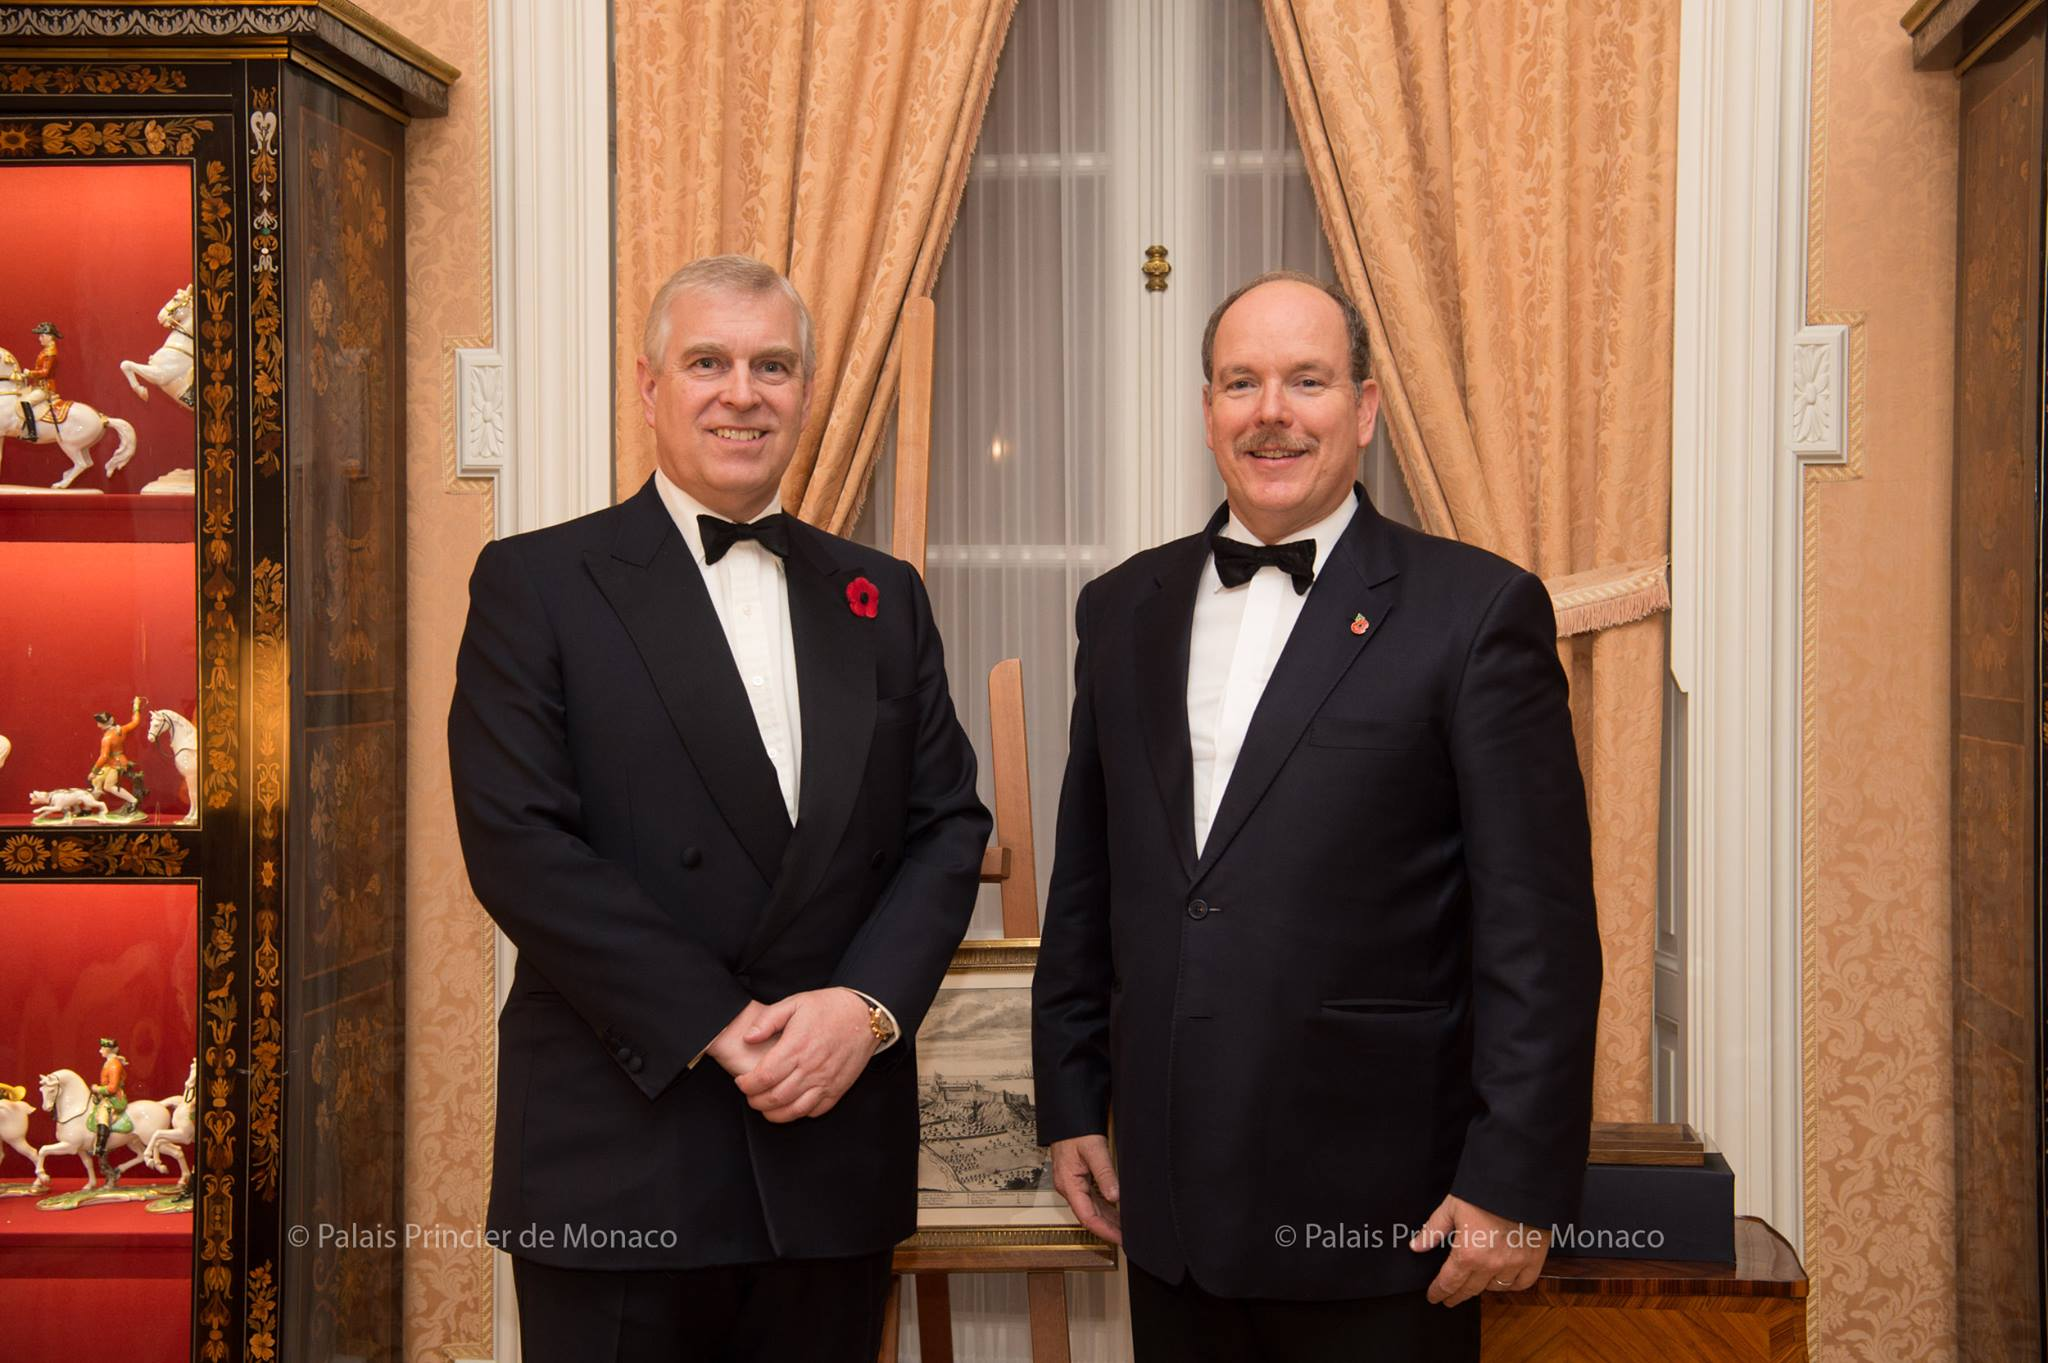 Prince Albert II welcomed Prince Andrew, Duke of York